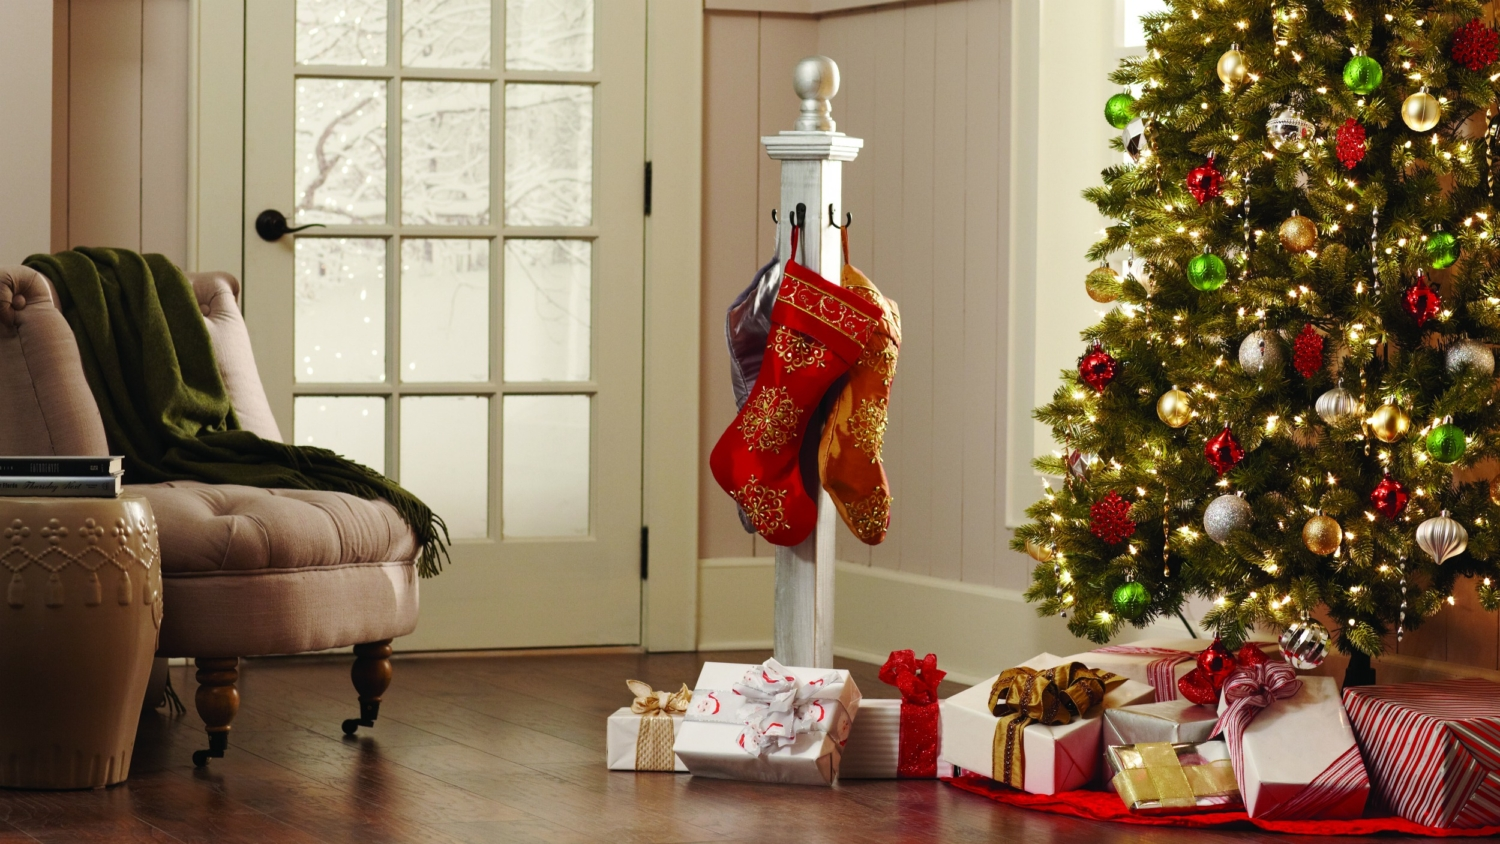 DIY holiday stocking post, perfect for hanging Christmas stockings when you don't have a mantle or just want to add them somewhere else in the house! Learn how to make this Christmas decoration for free!! #DIHWorkshop #sponsored